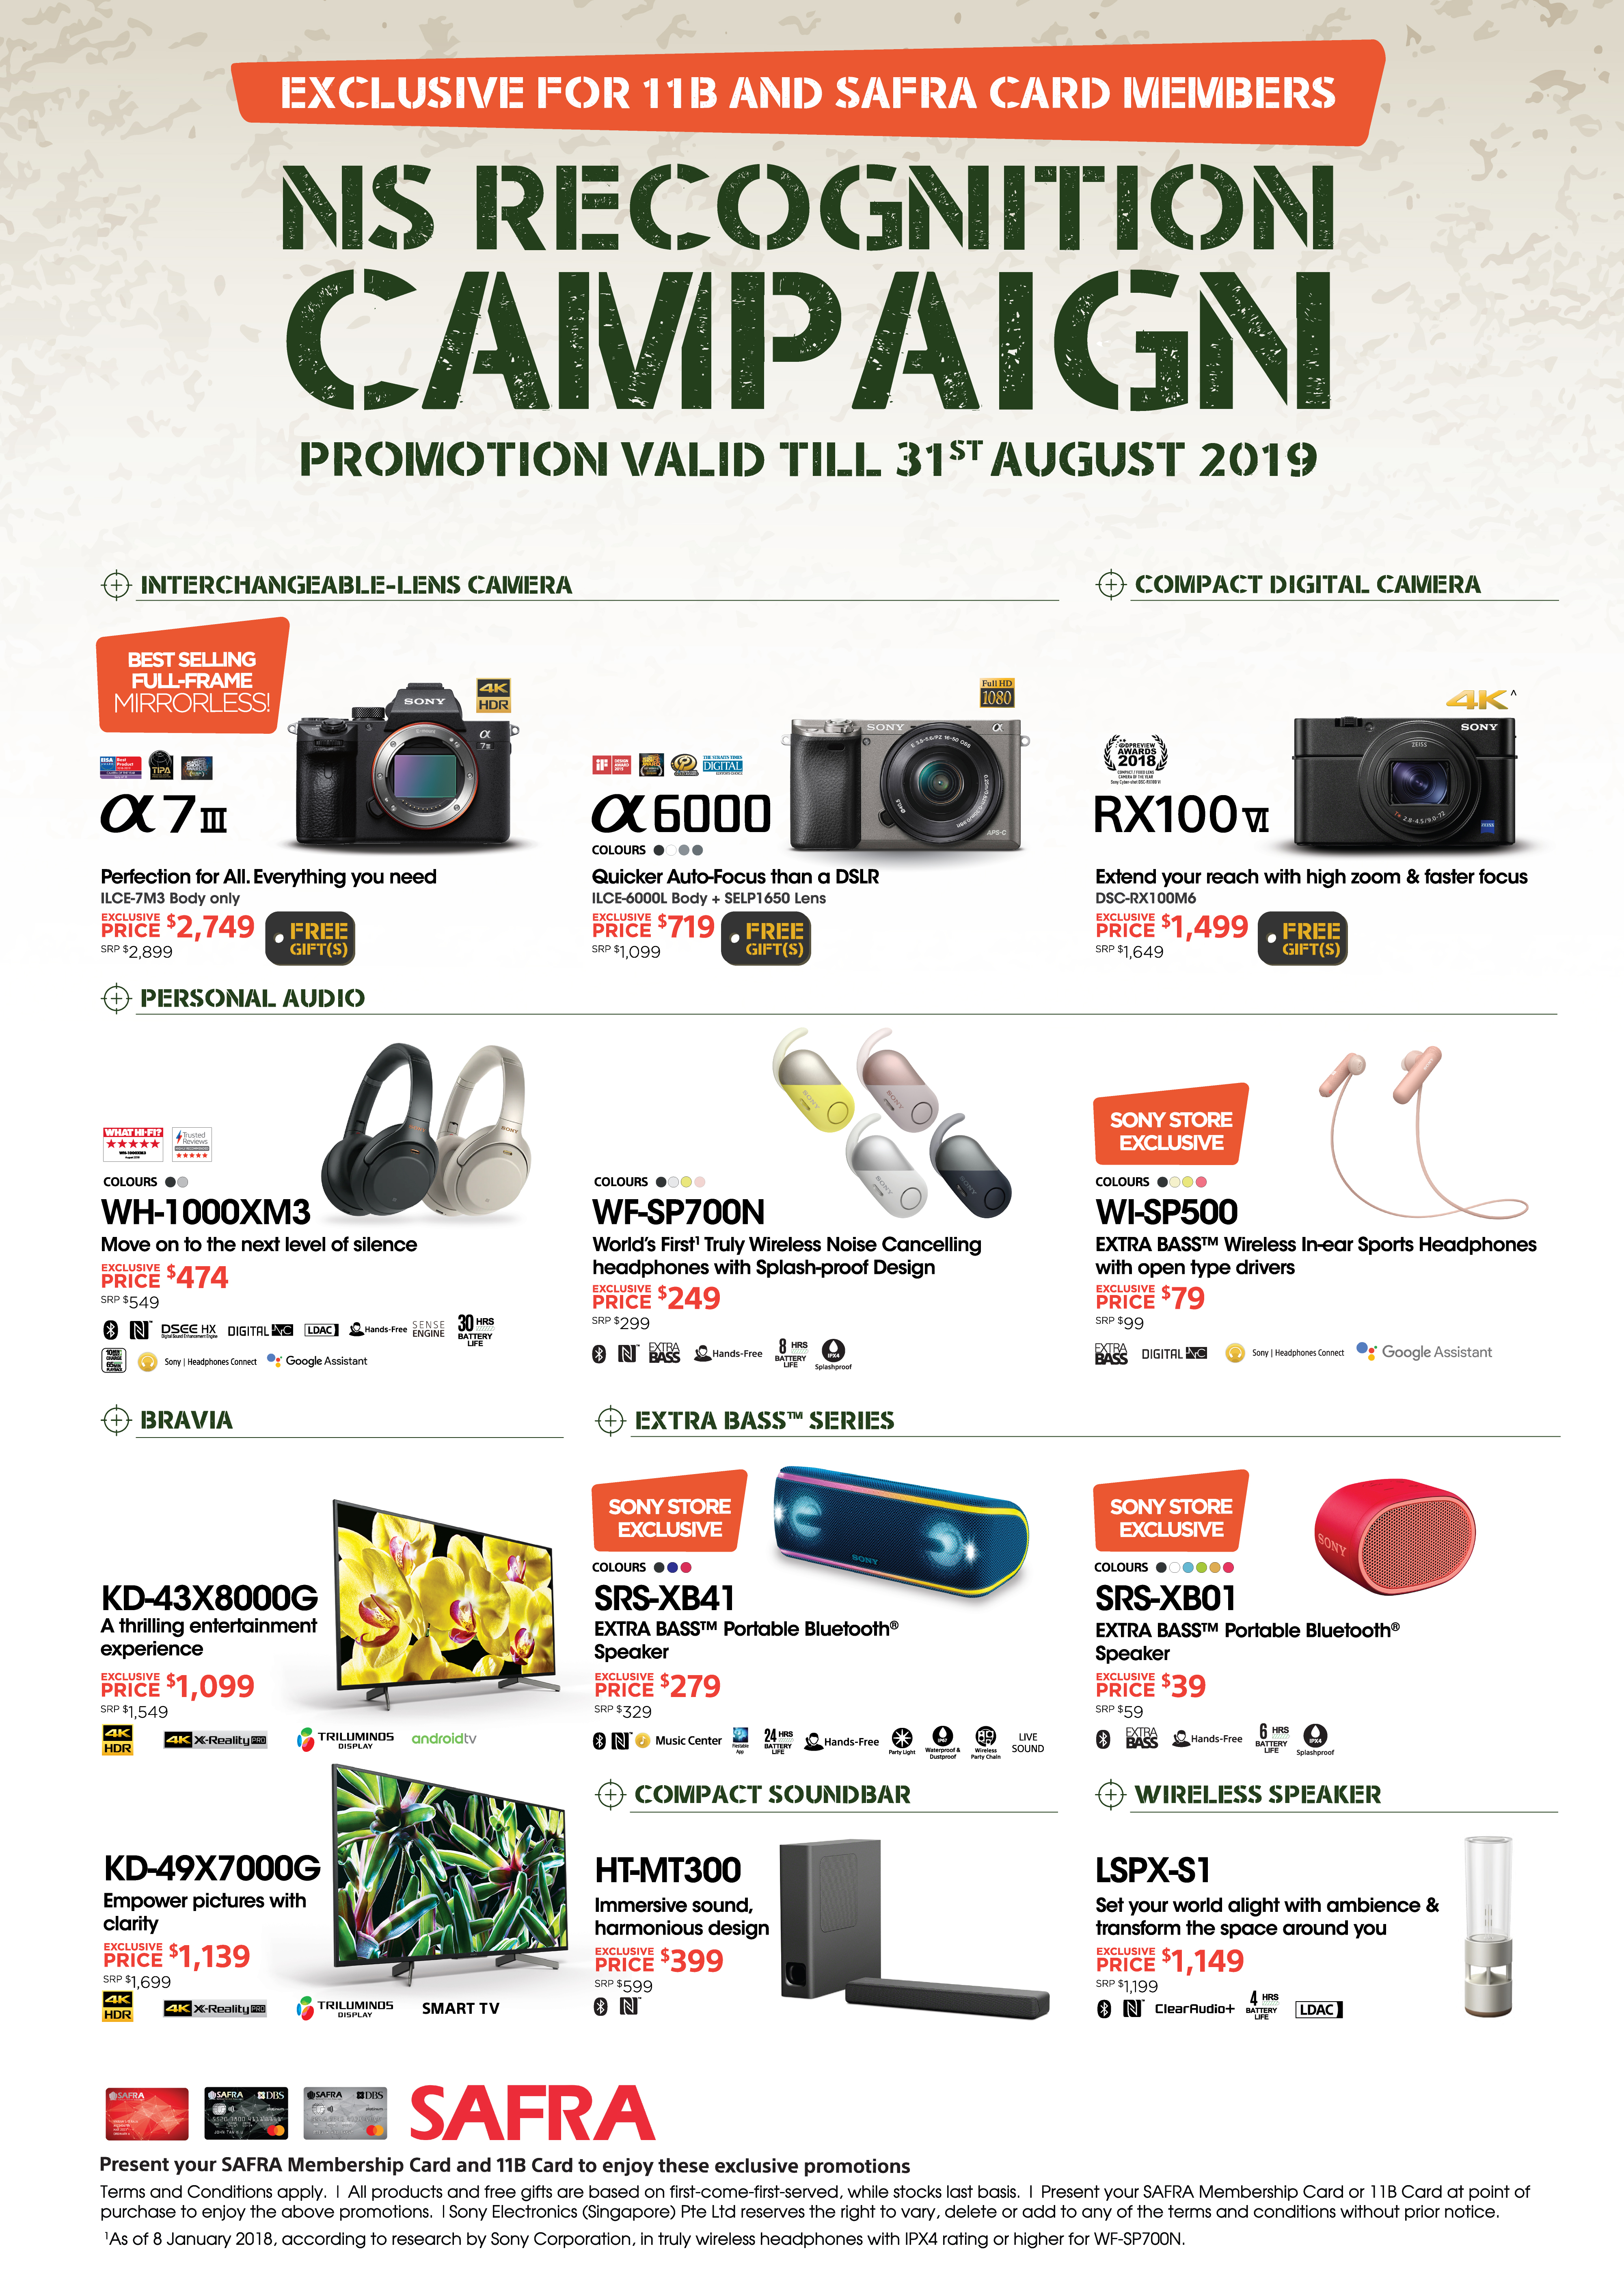 Exclusive for 11B and SAFRA card members. NS Recognition Campaign. Promotion valid till 31 August 2019.